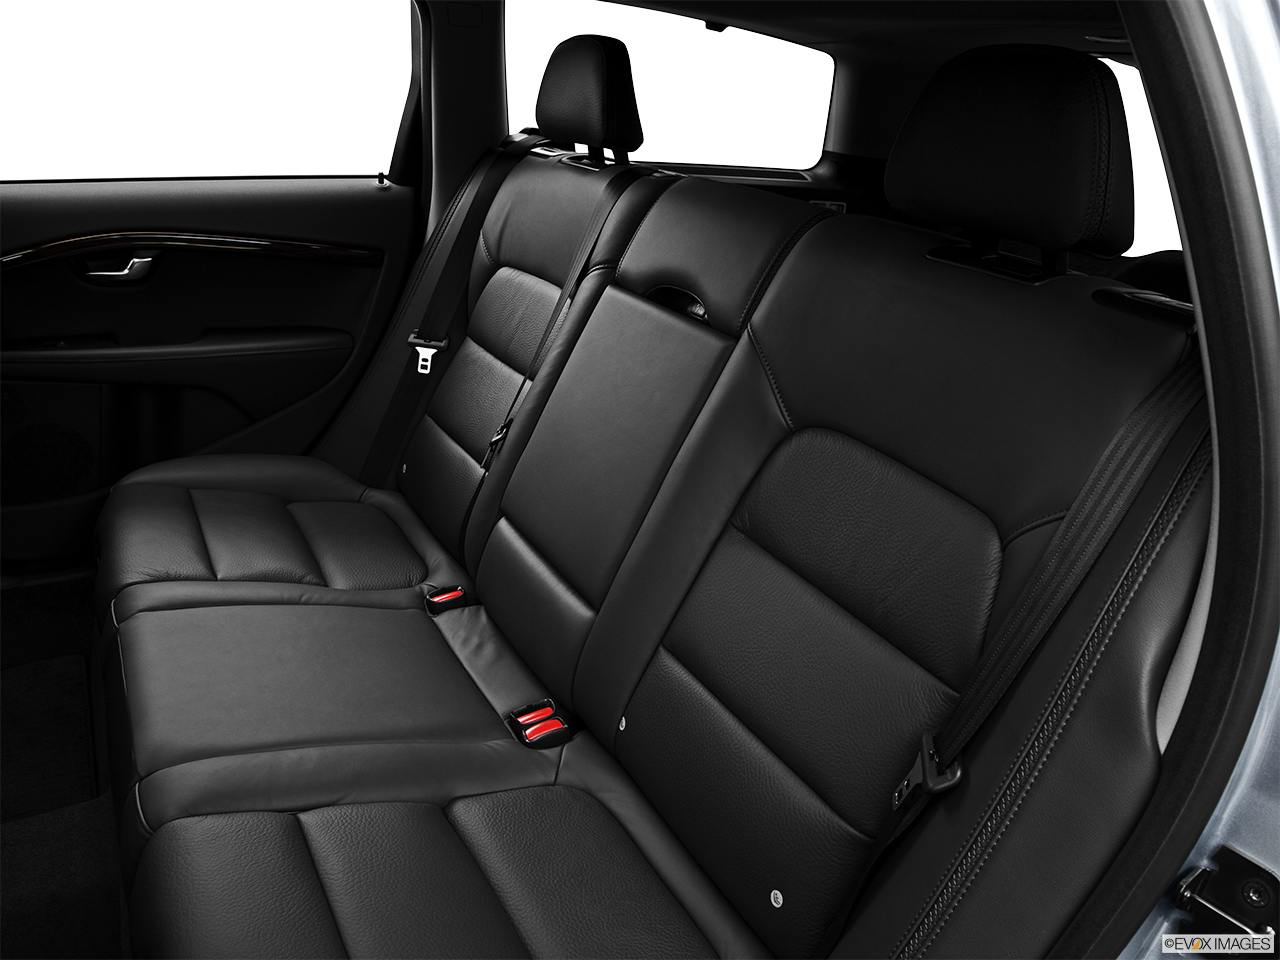 2013 Volvo XC70 T6 AWD Platinum Rear seats from Drivers Side.